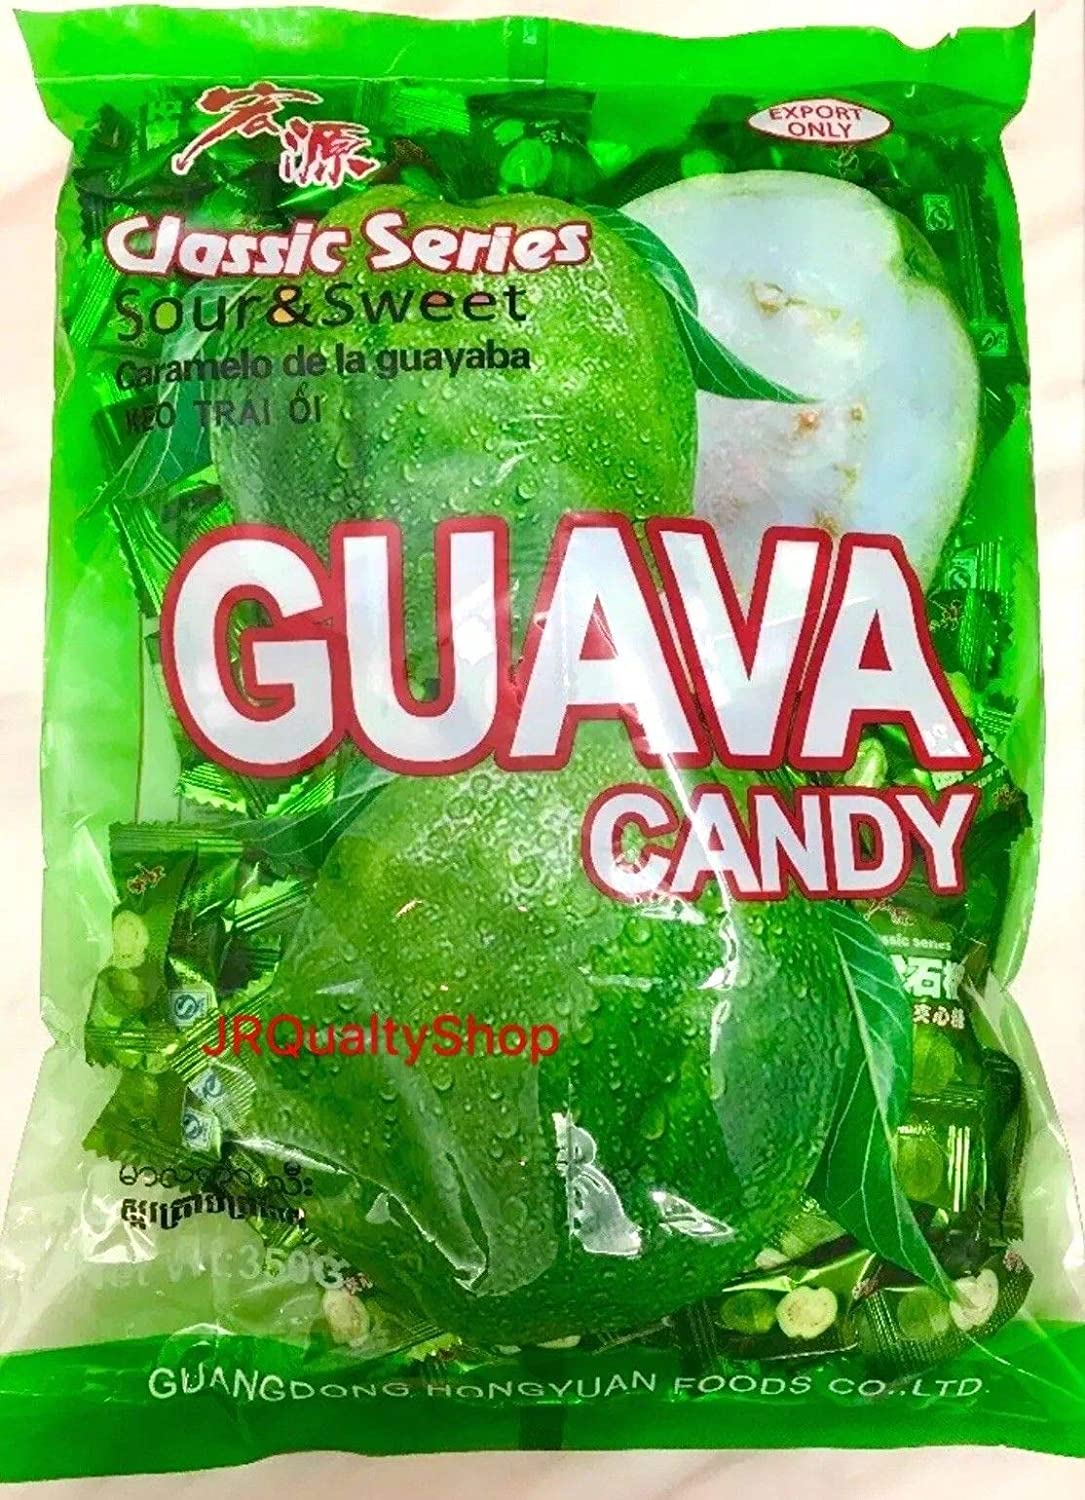 Classic Series Guava Candy, 12.3 oz